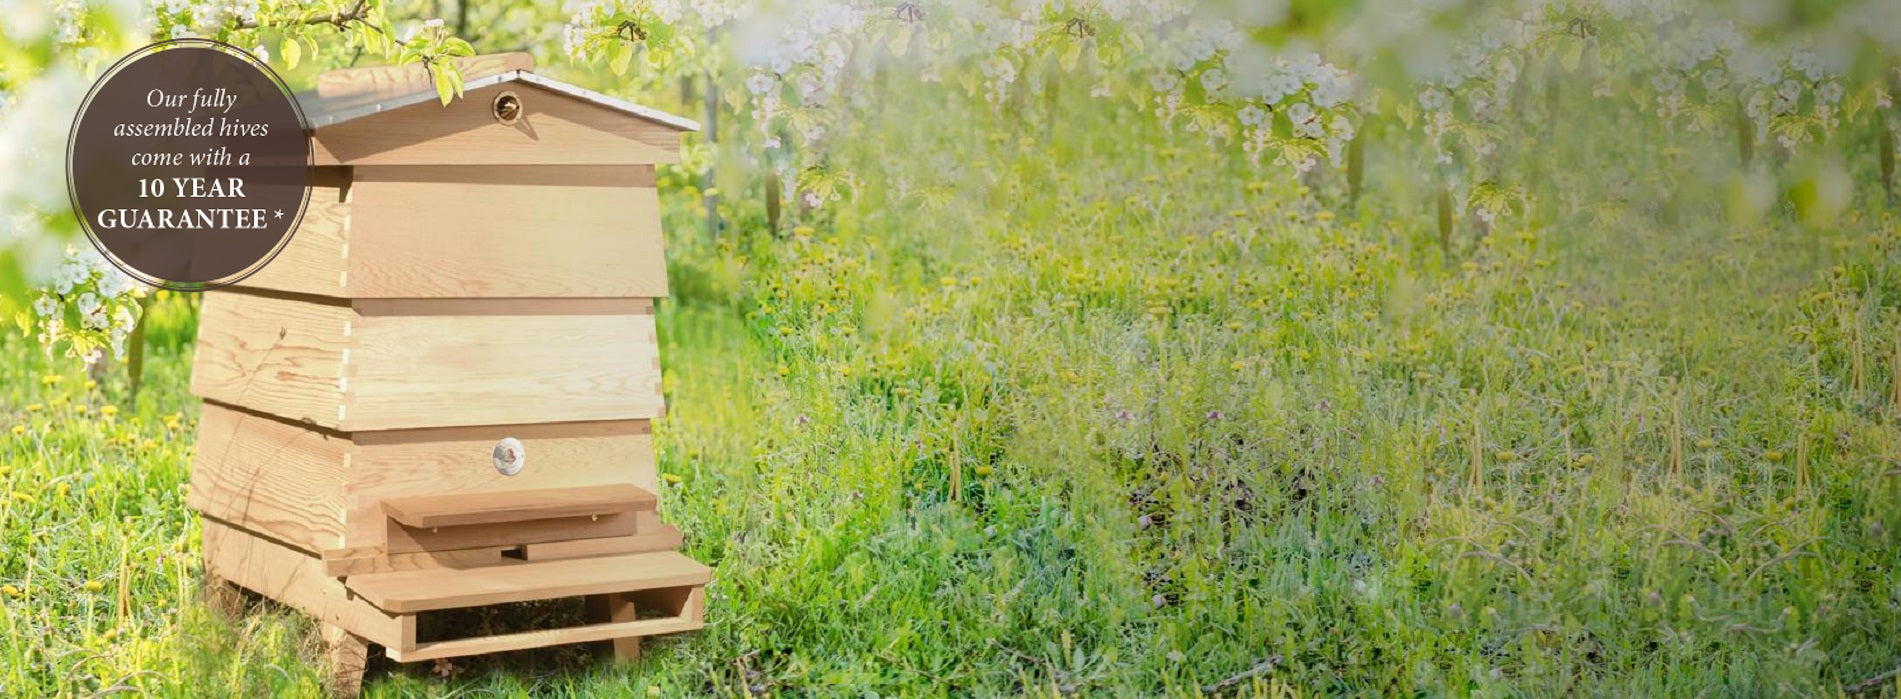 We offer a ten year guarantee on all our assembled Hives